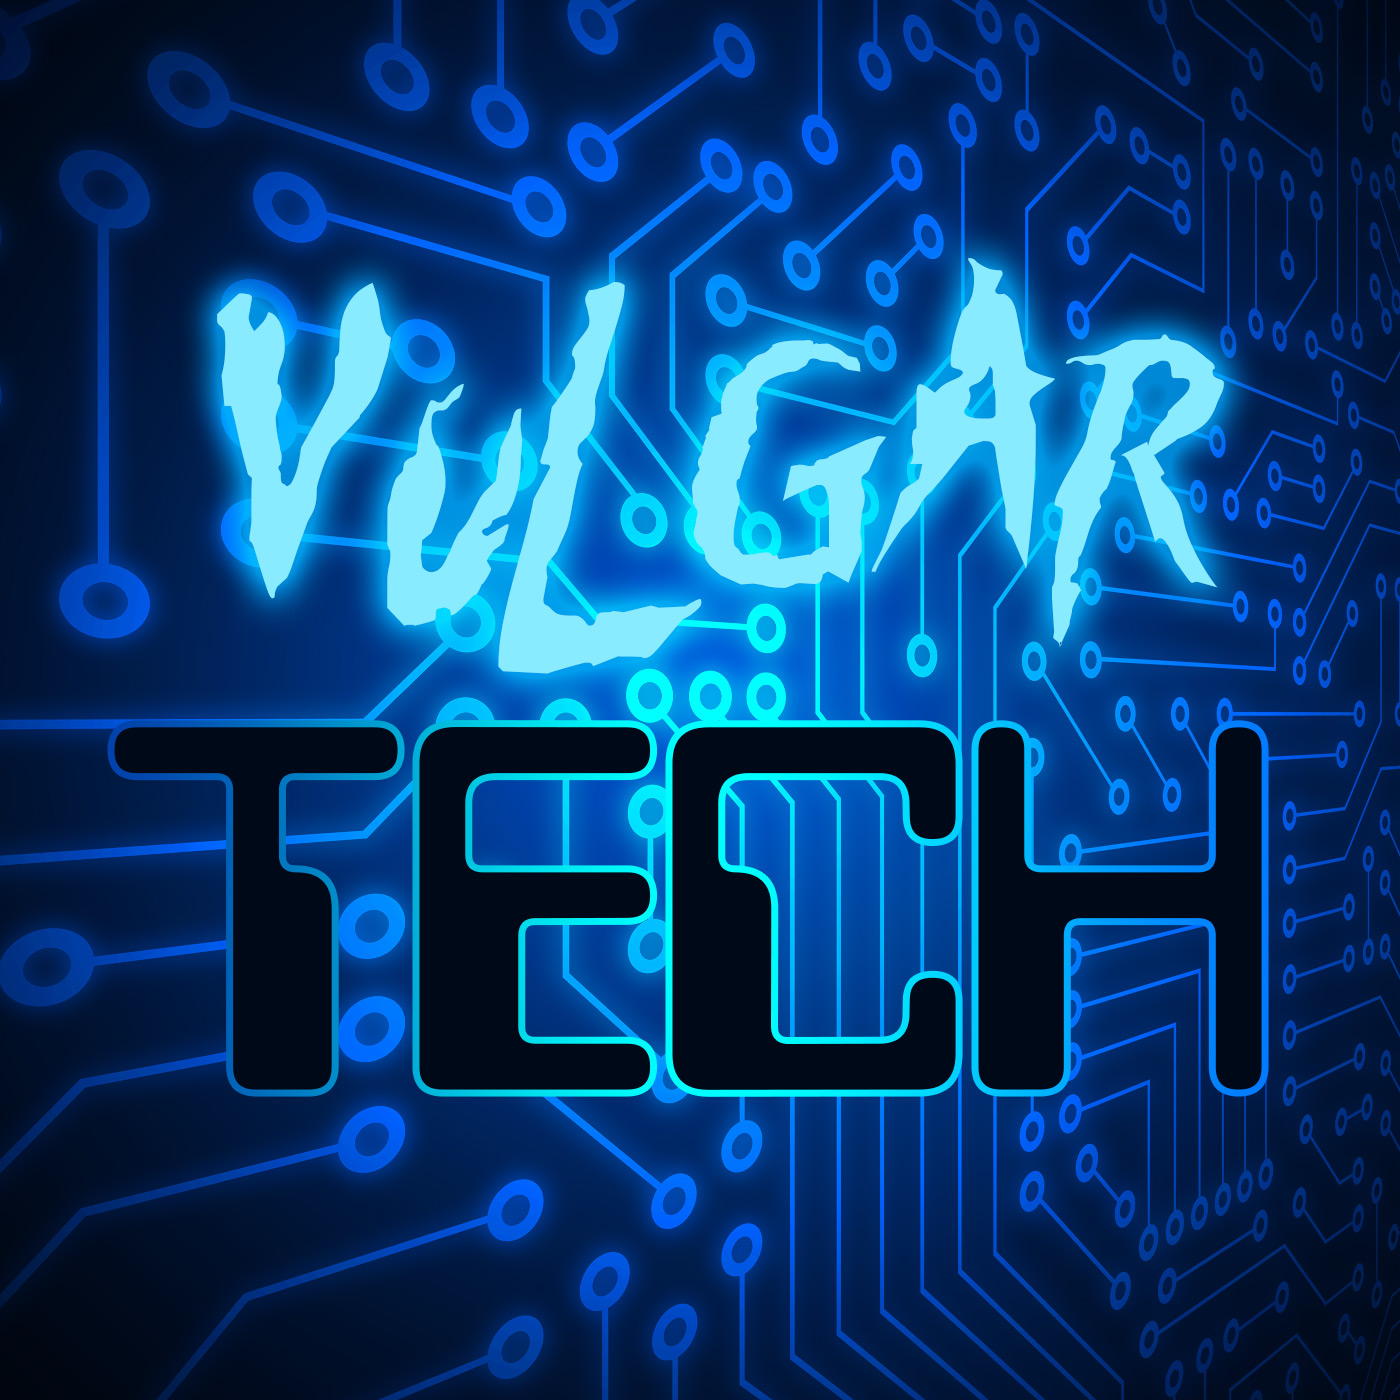 Vulgar Tech 016 : Keyloggers, Hackers, RansomWare, and a Bunch of Weird Tech News